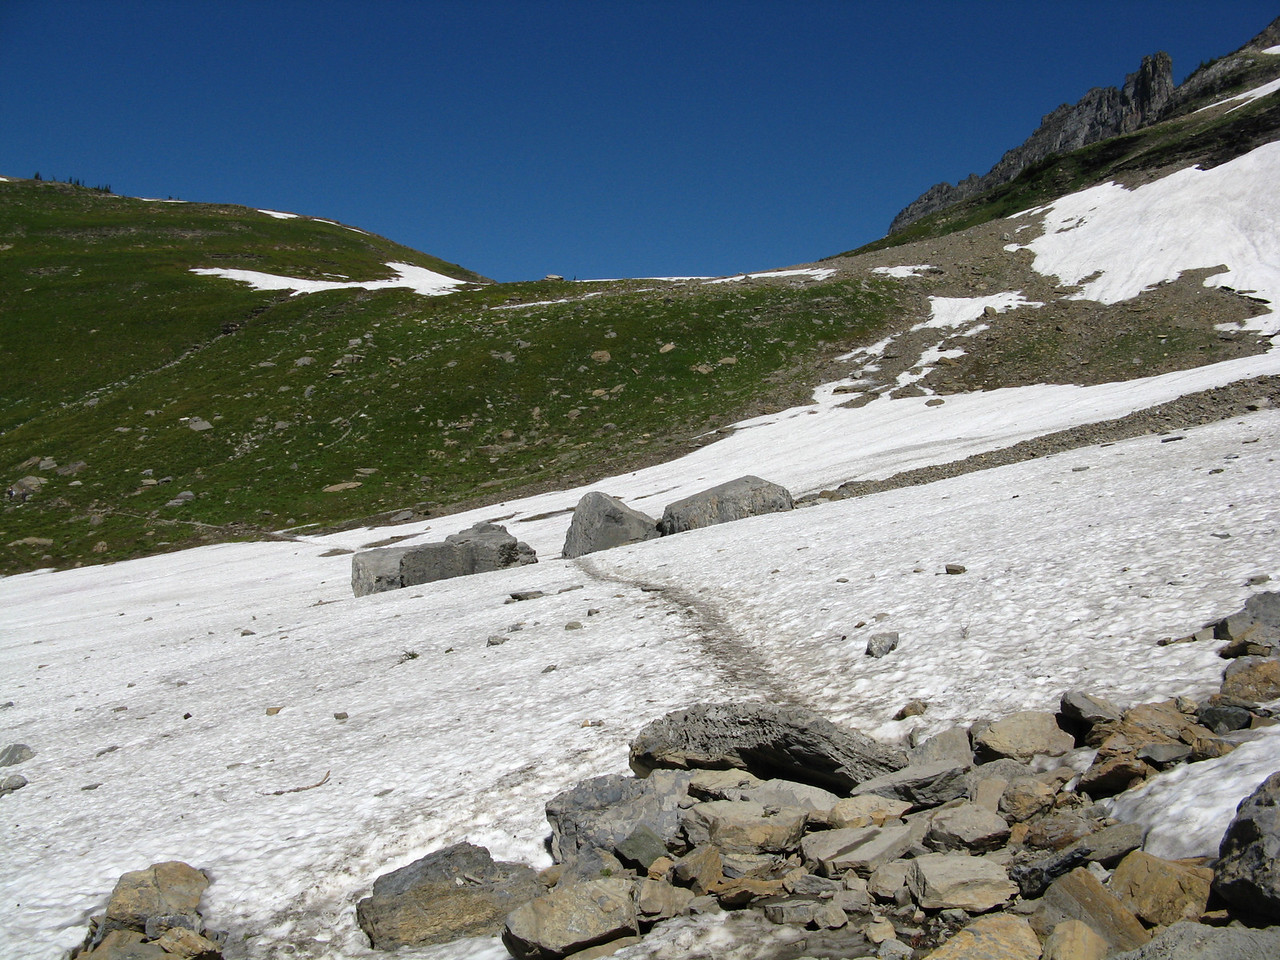 The second snow field was longer than the first, but the slope was much less.